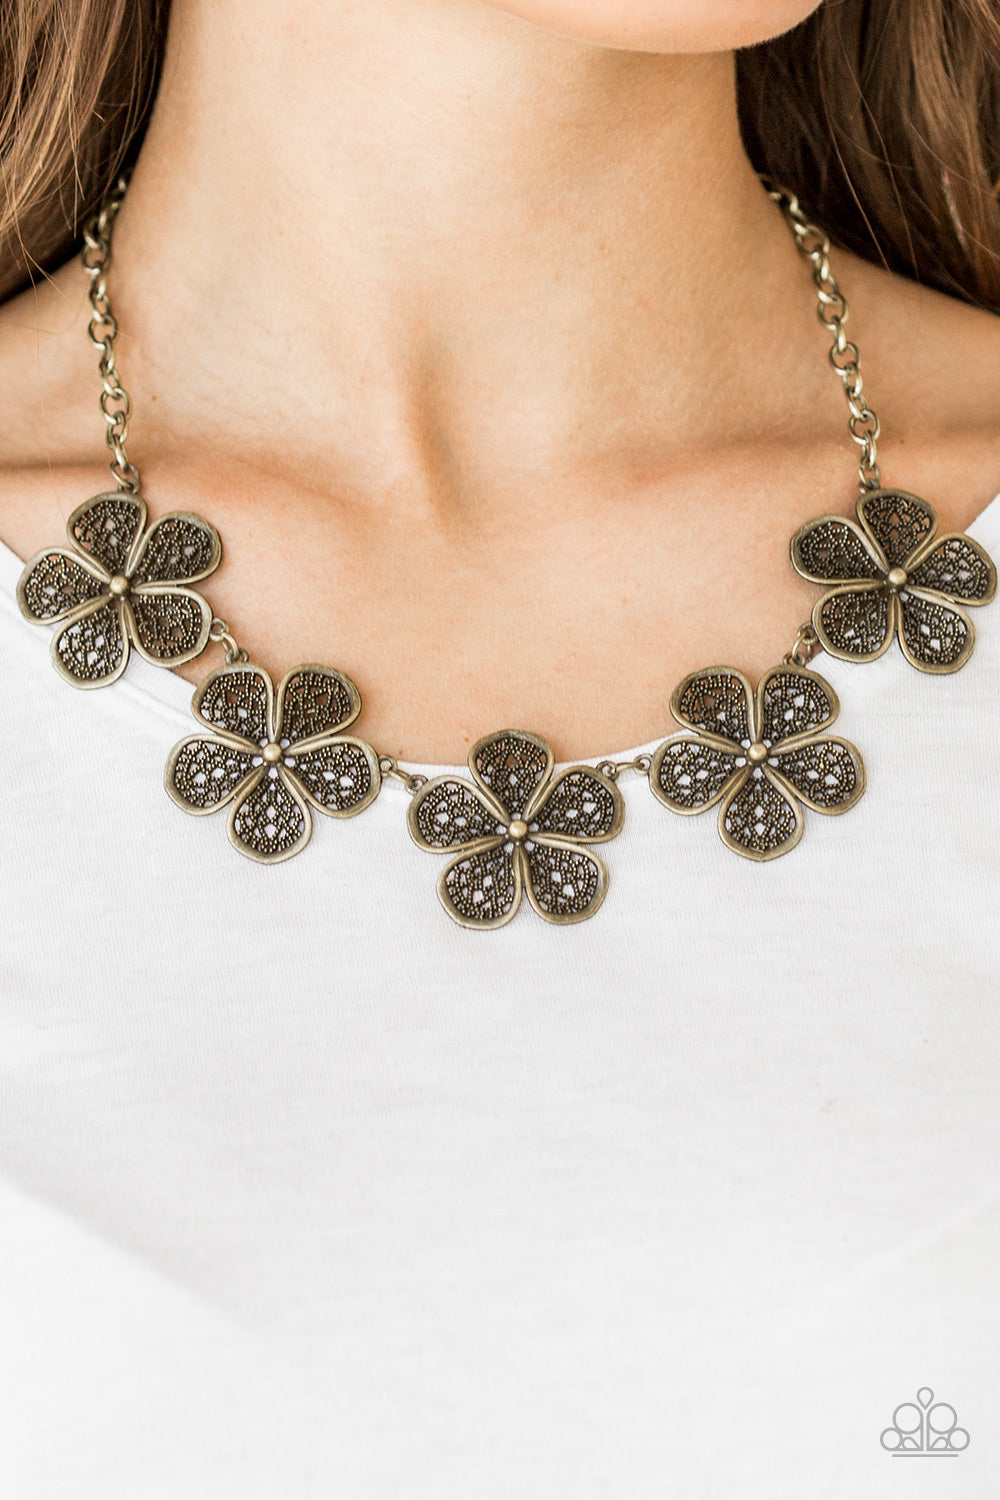 No Common Daisy Necklace - Brass